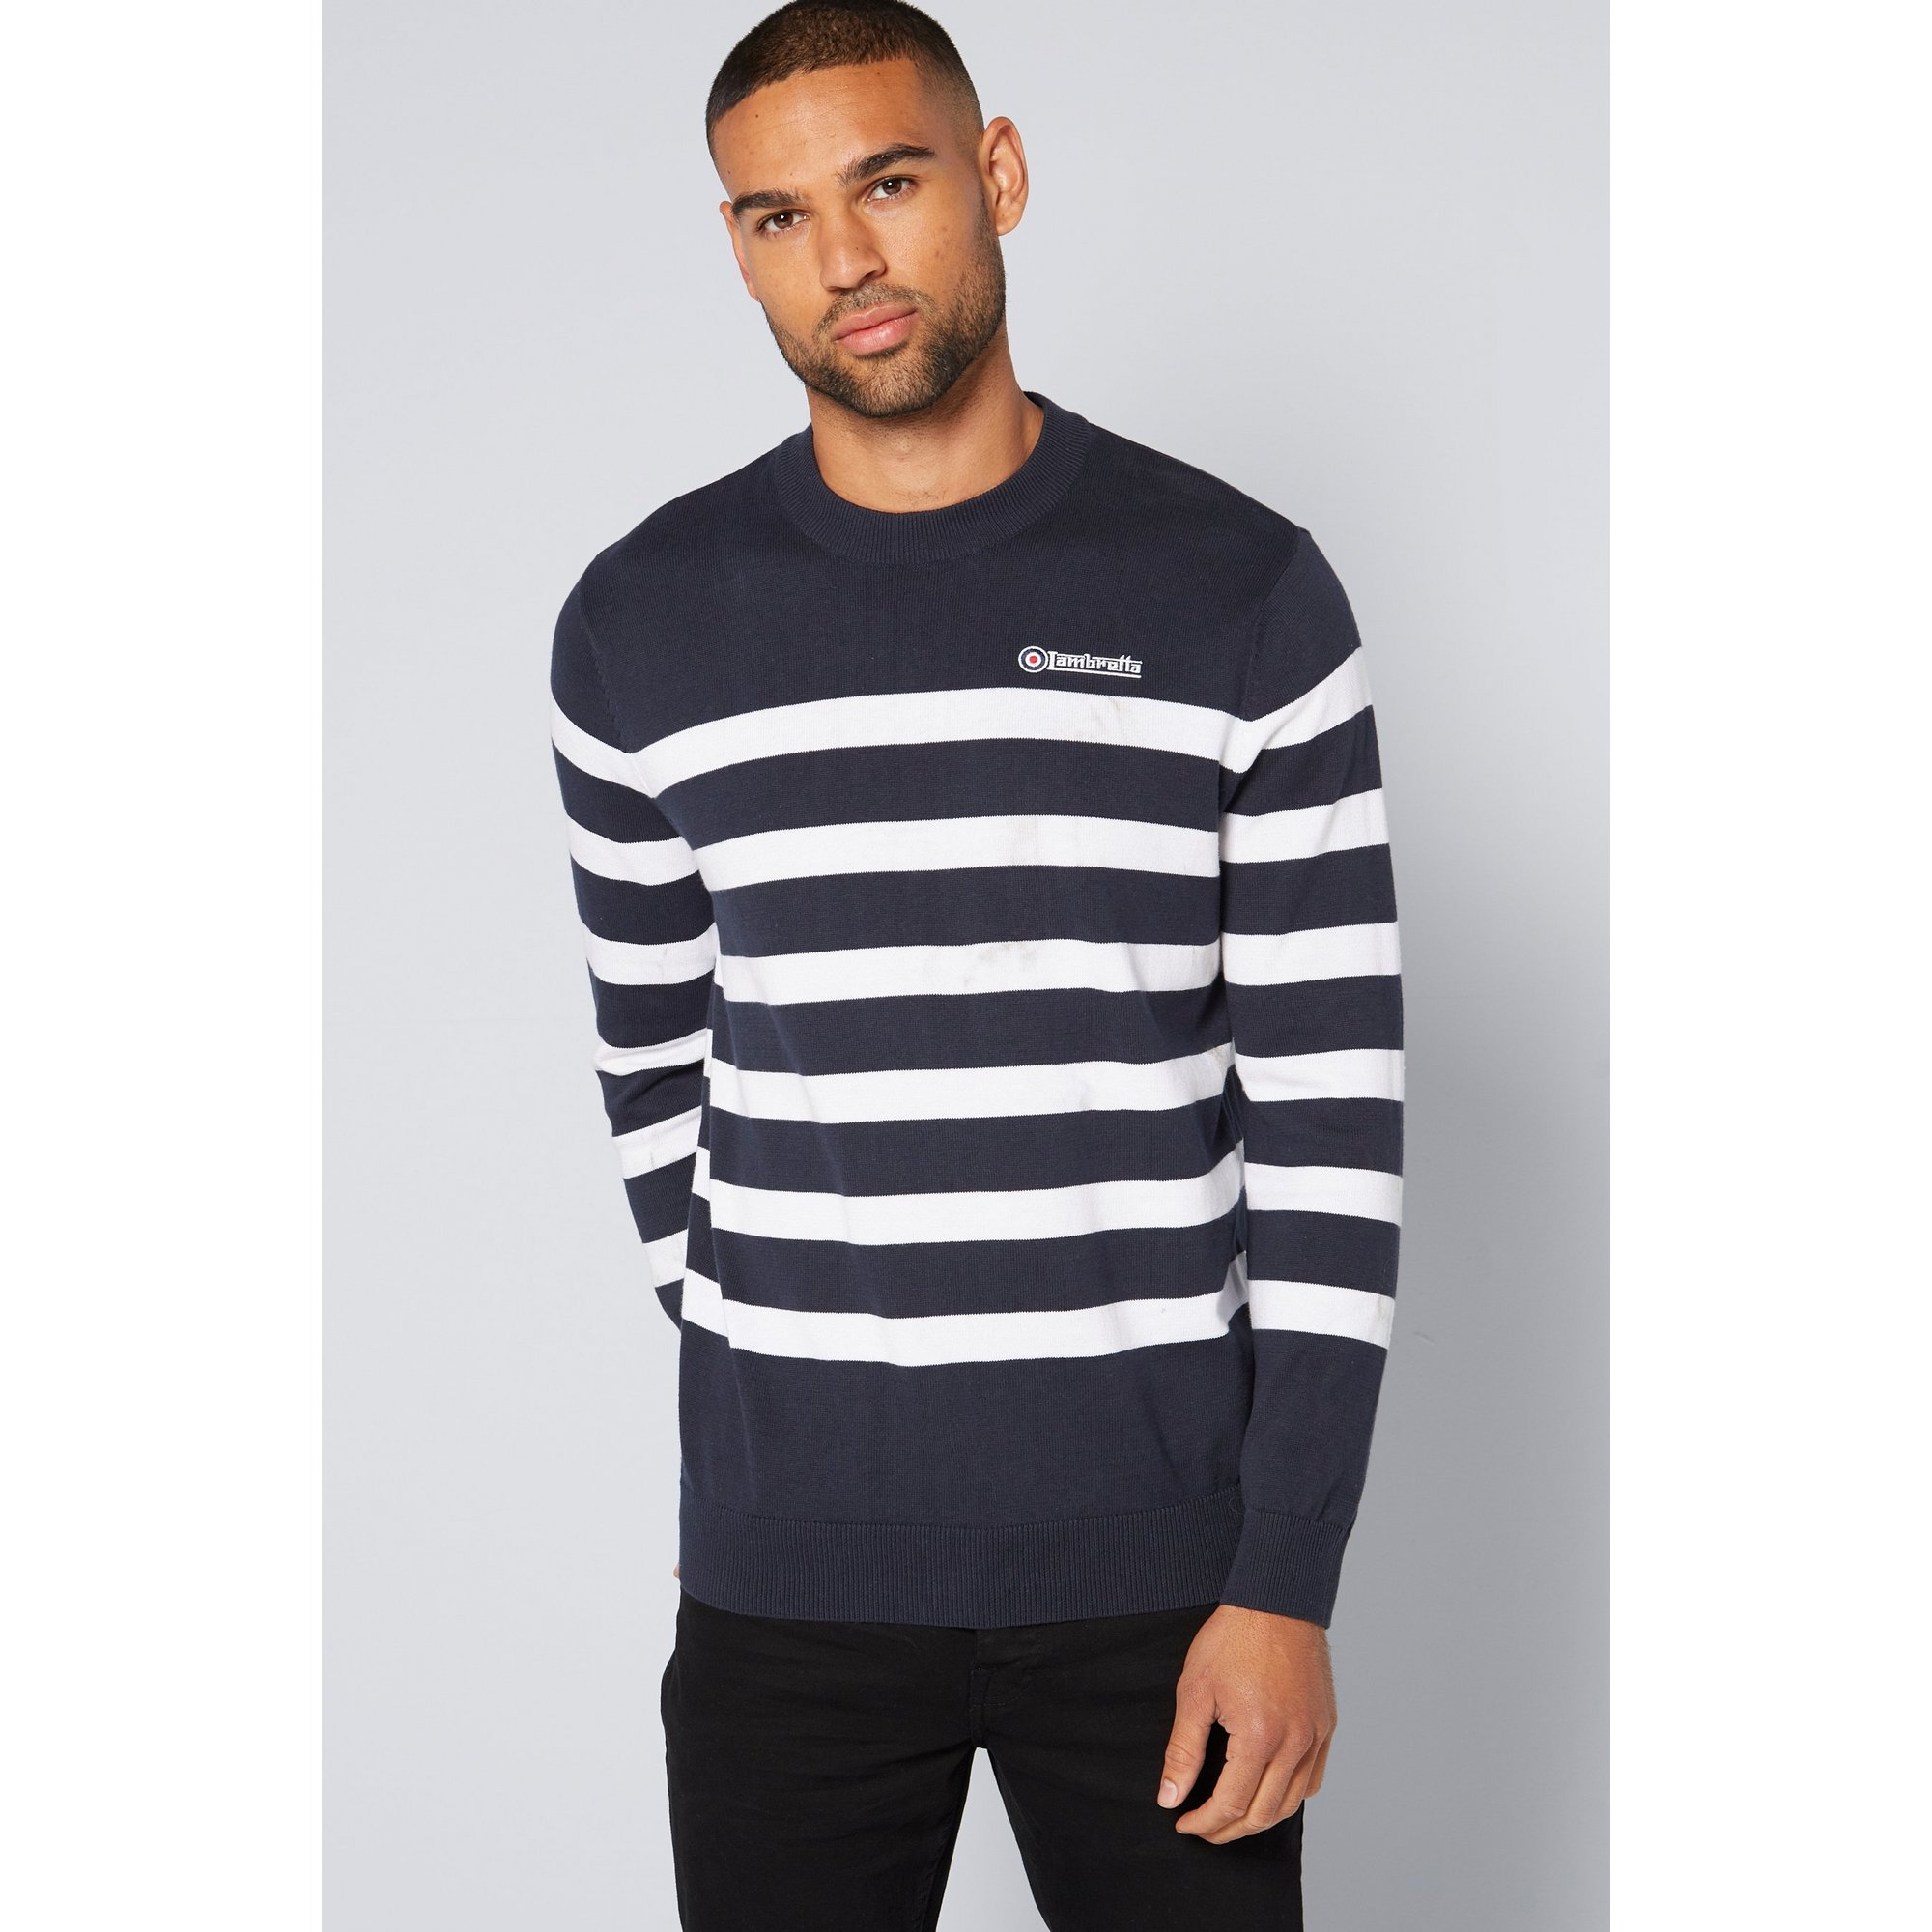 Image of Lambretta Navy and White Striped Knit